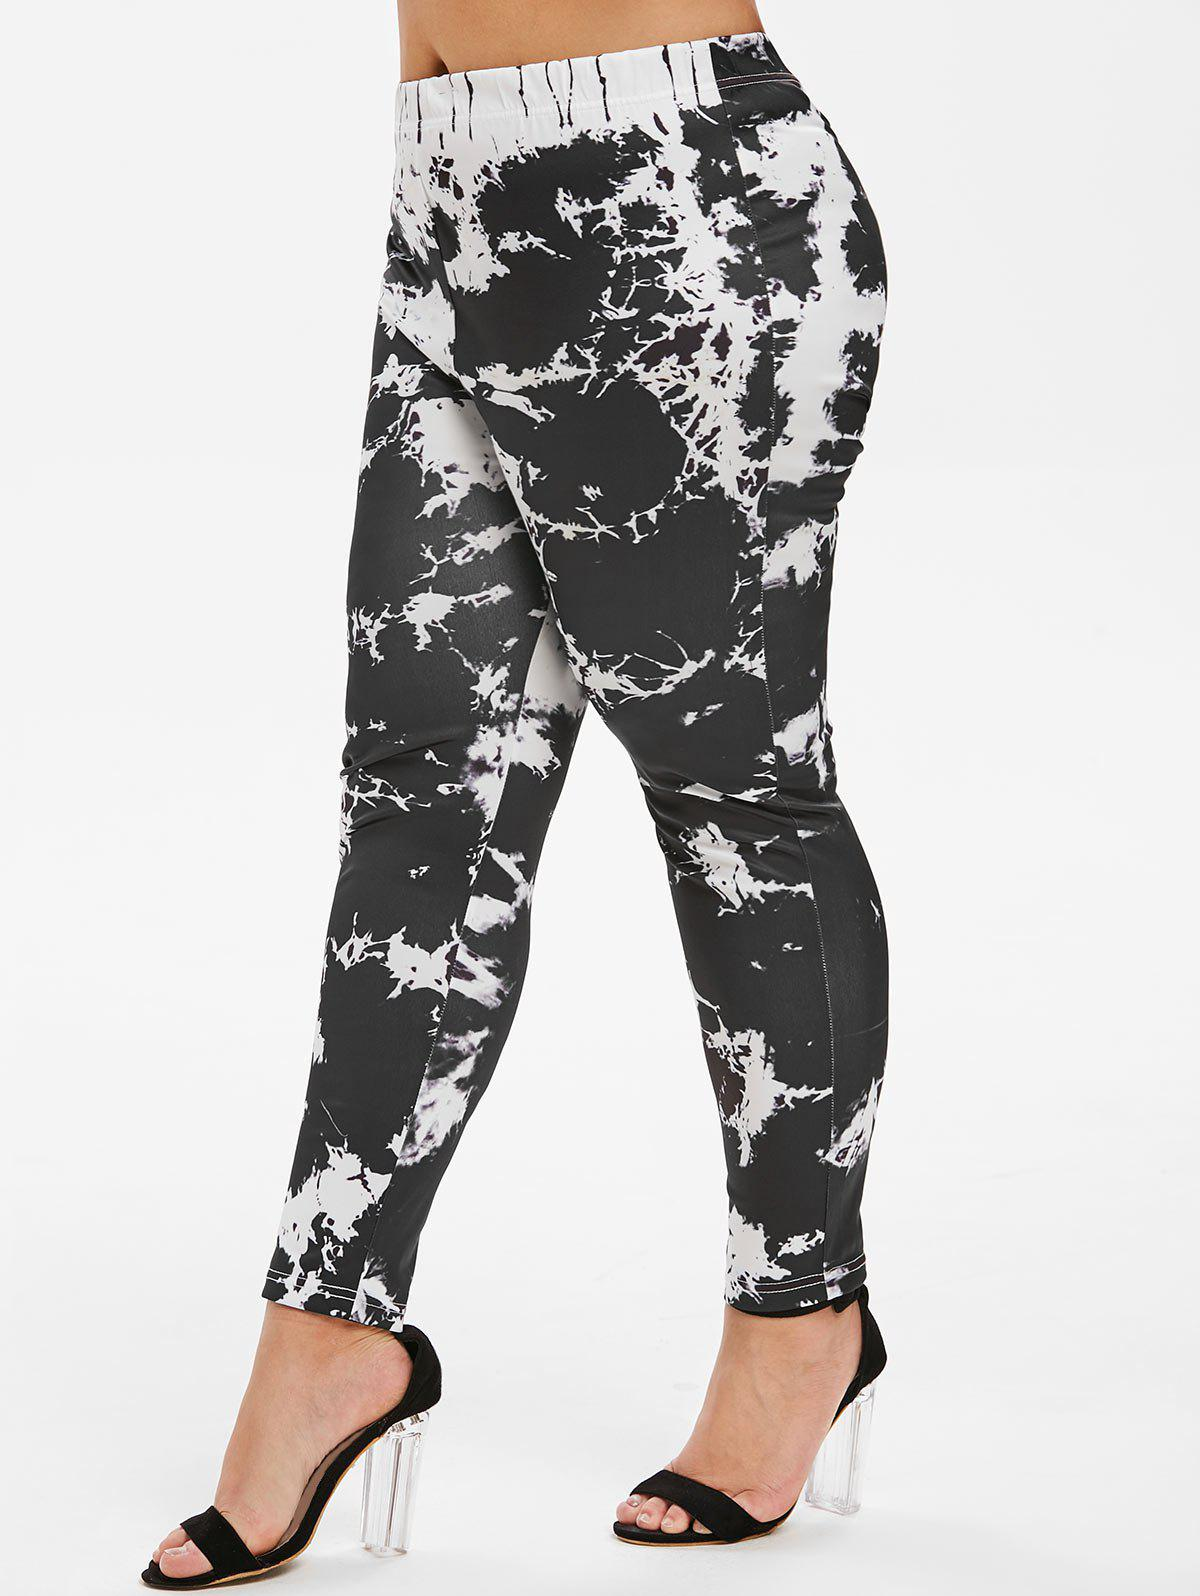 Buy Marble Print High Waisted Skinny Plus Size Pants